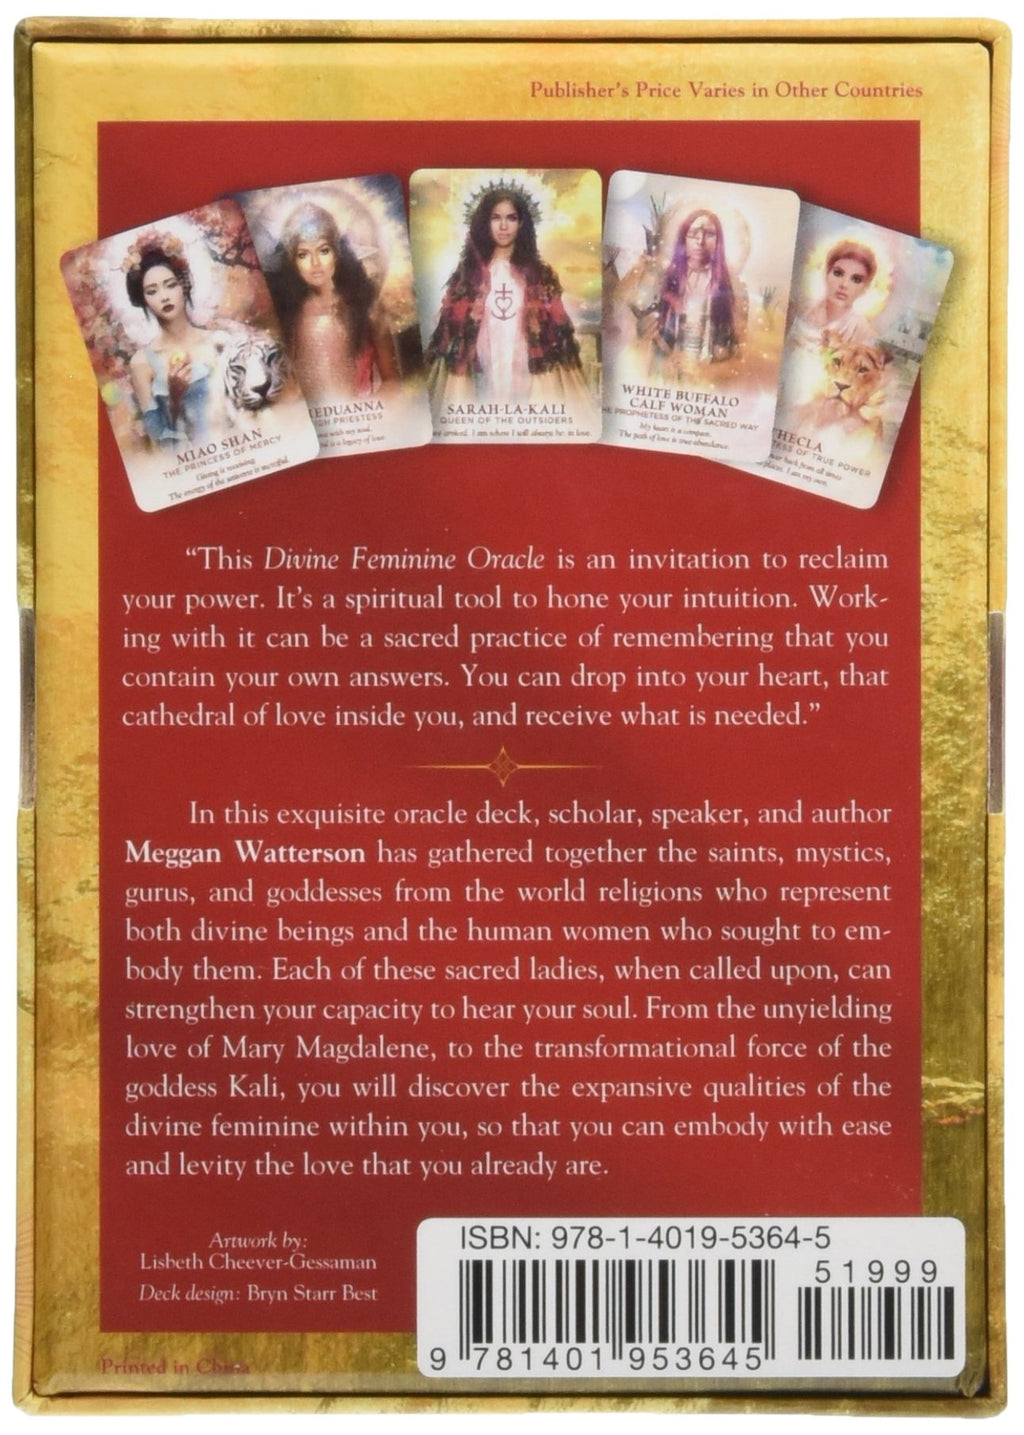 Divine Feminine Oracle by Meggan Watterson & Lisbeth Cheever-Gessaman